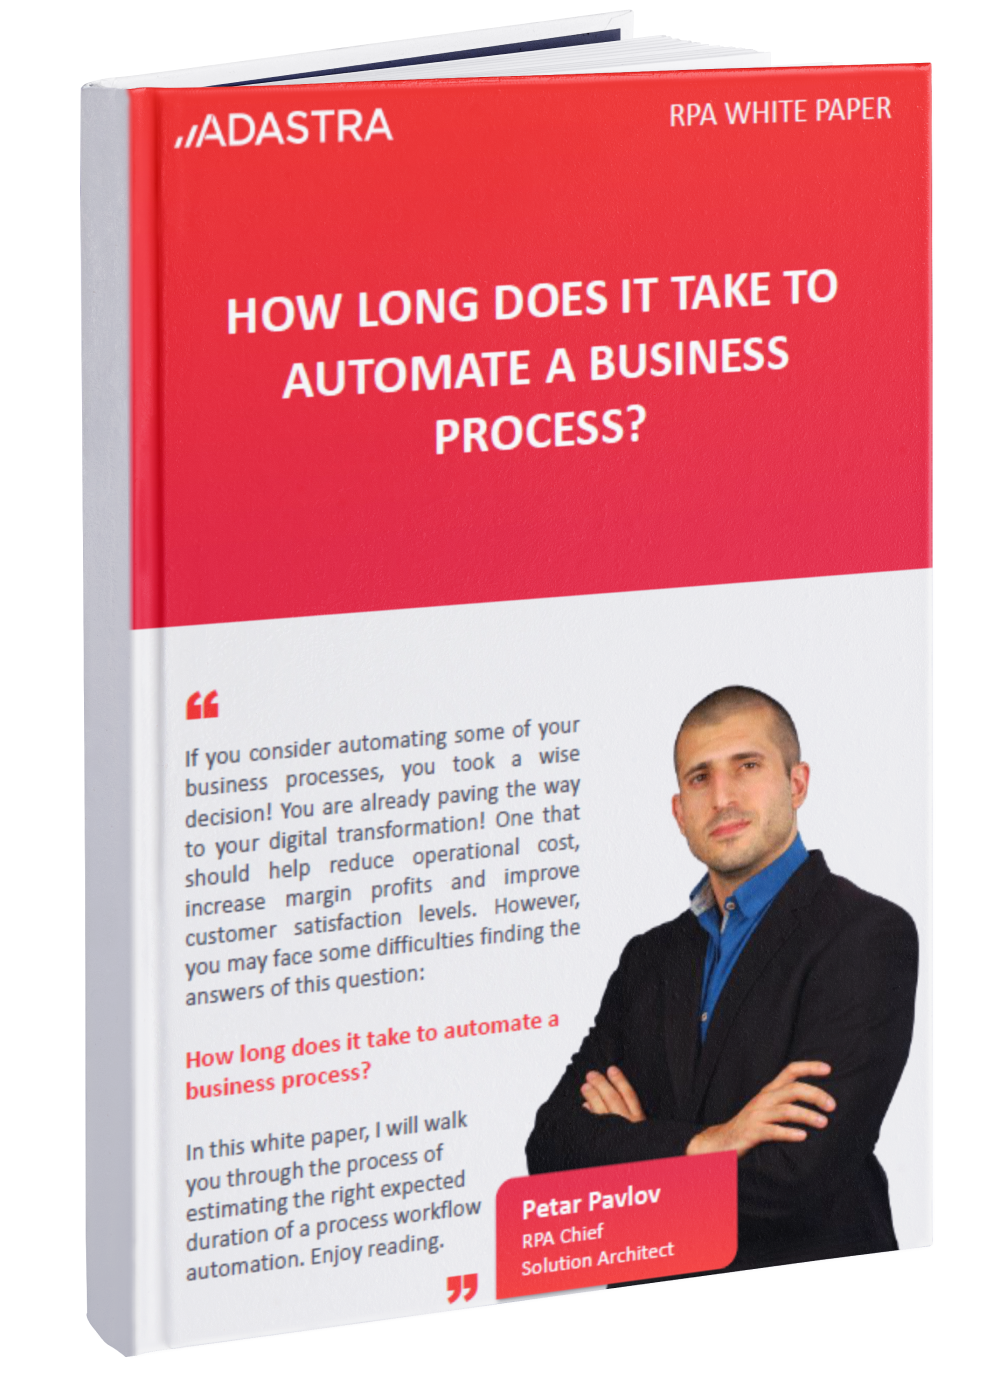 How long does it take to automate a business process? RPA White Paper by Adastra Bulgaria, hard cover.